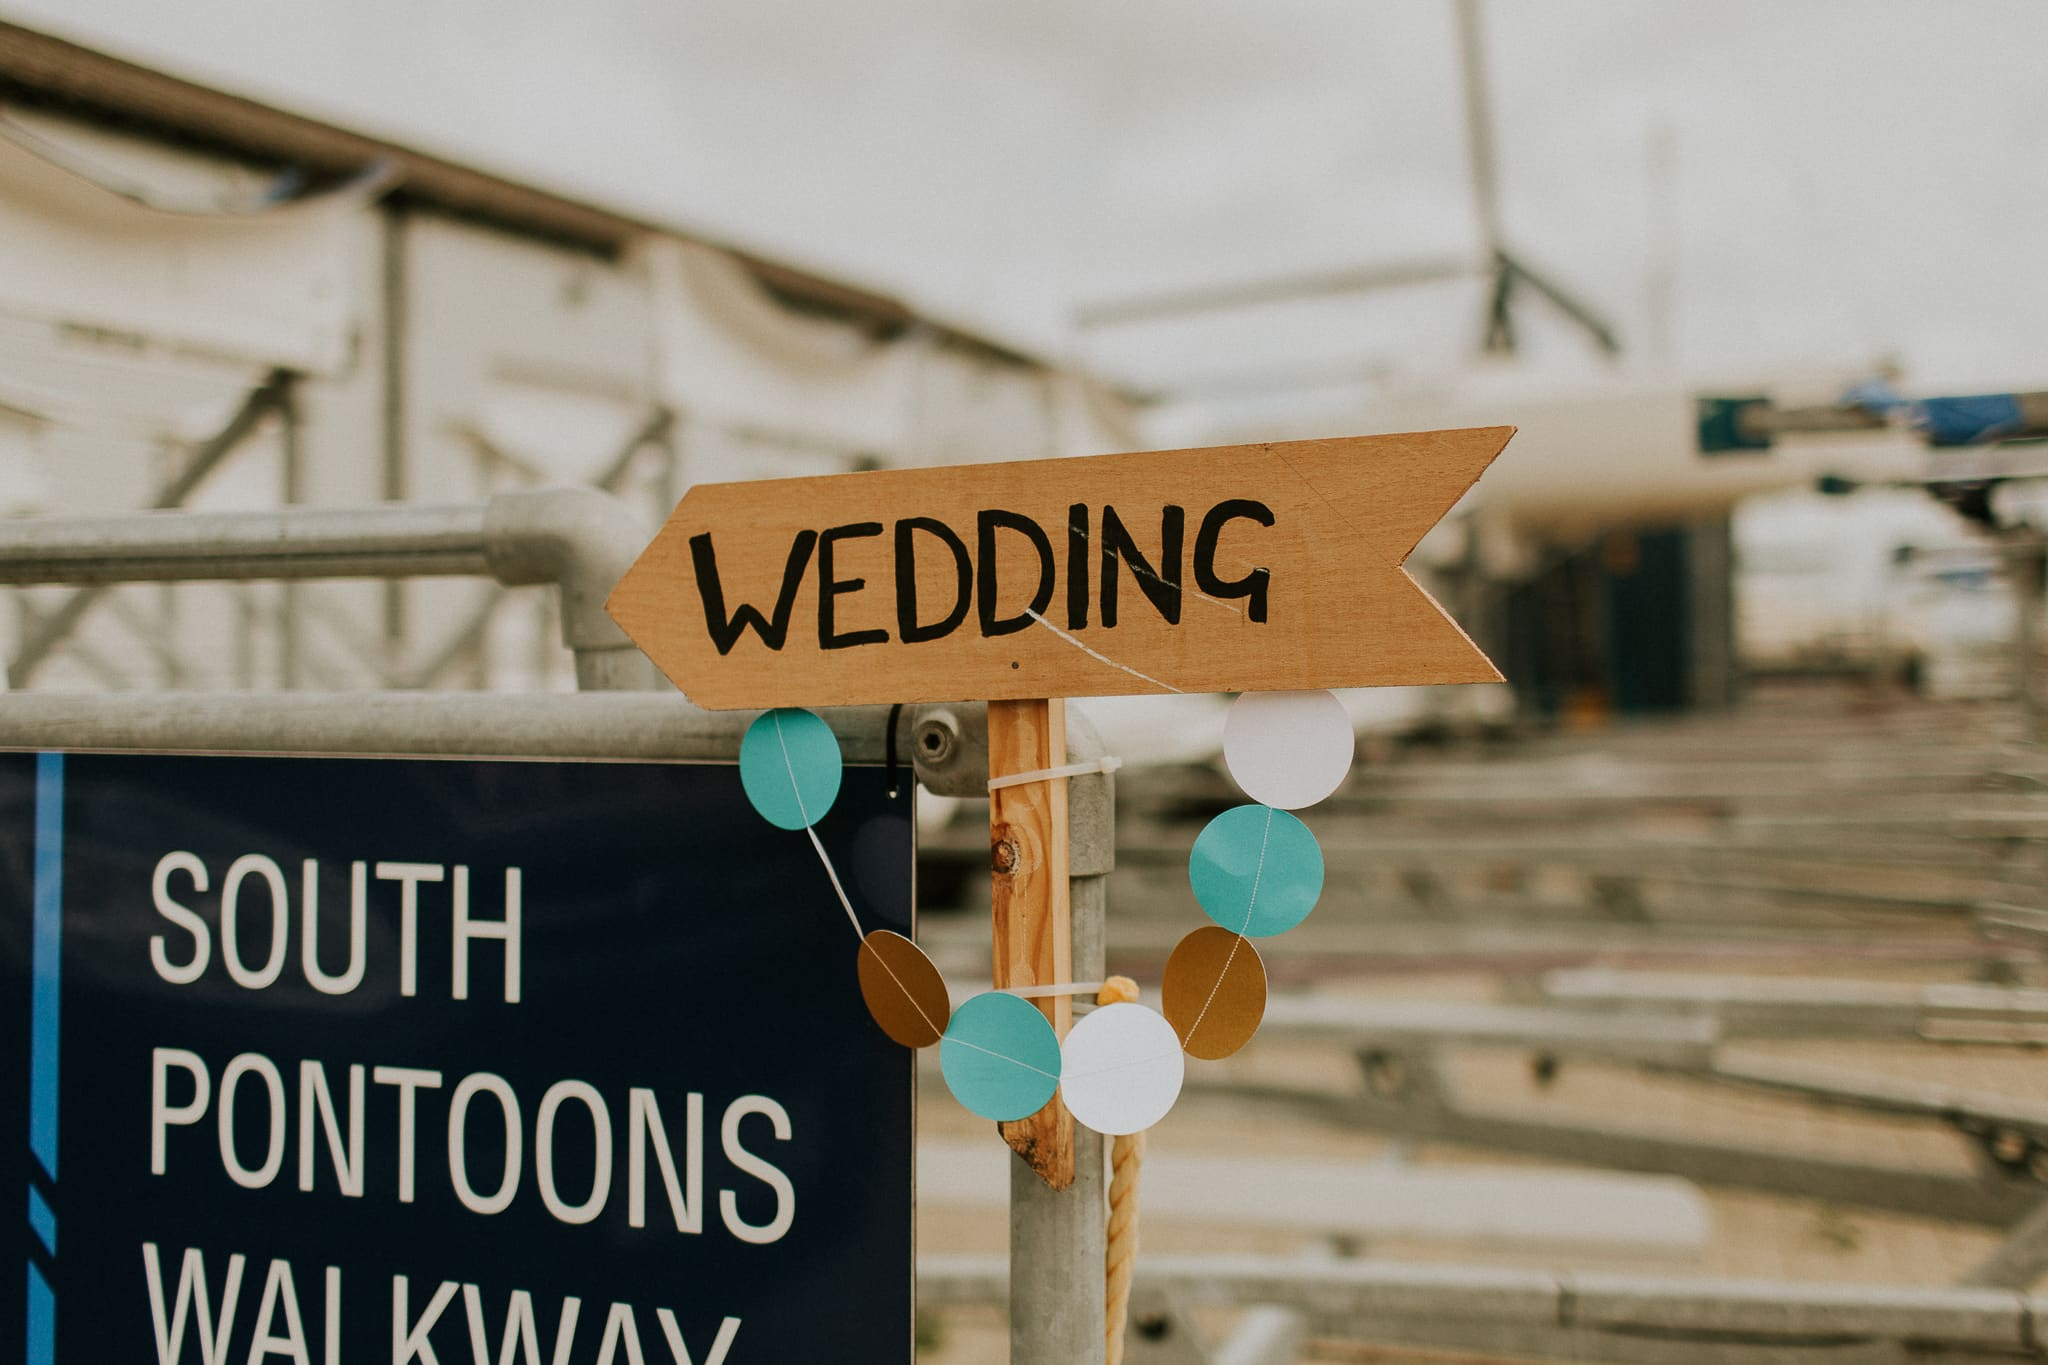 sign pointing in direction of wedding